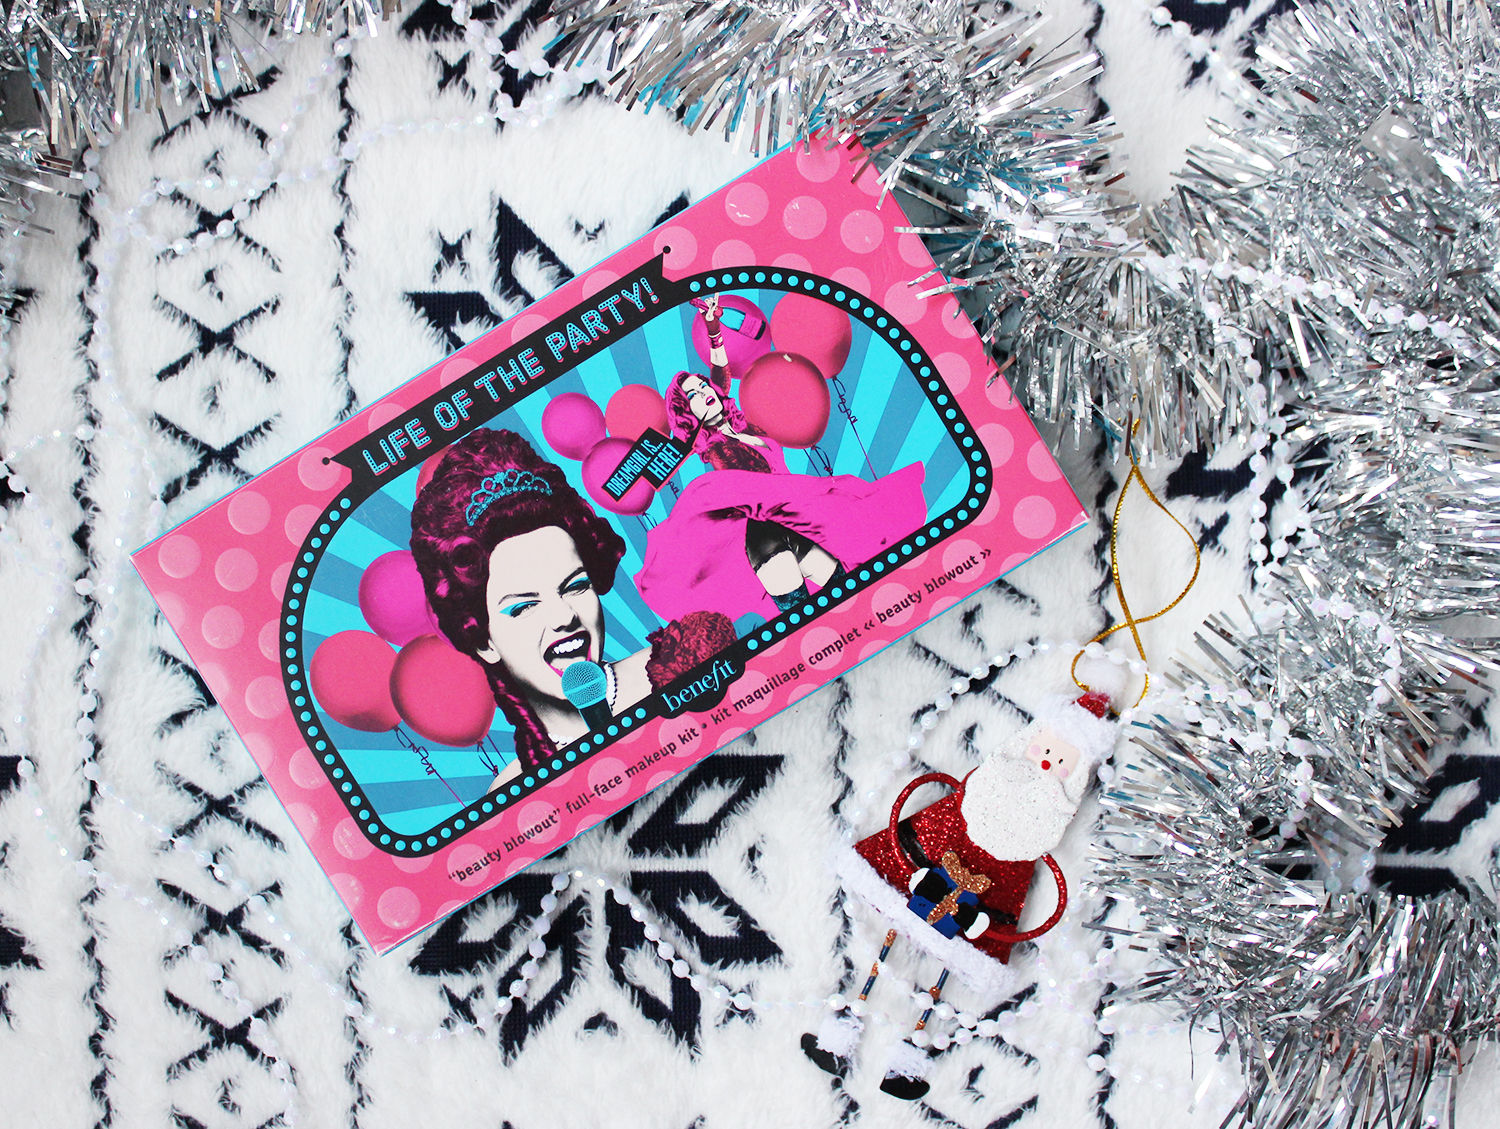 Benefit life of the party christmas giveaway